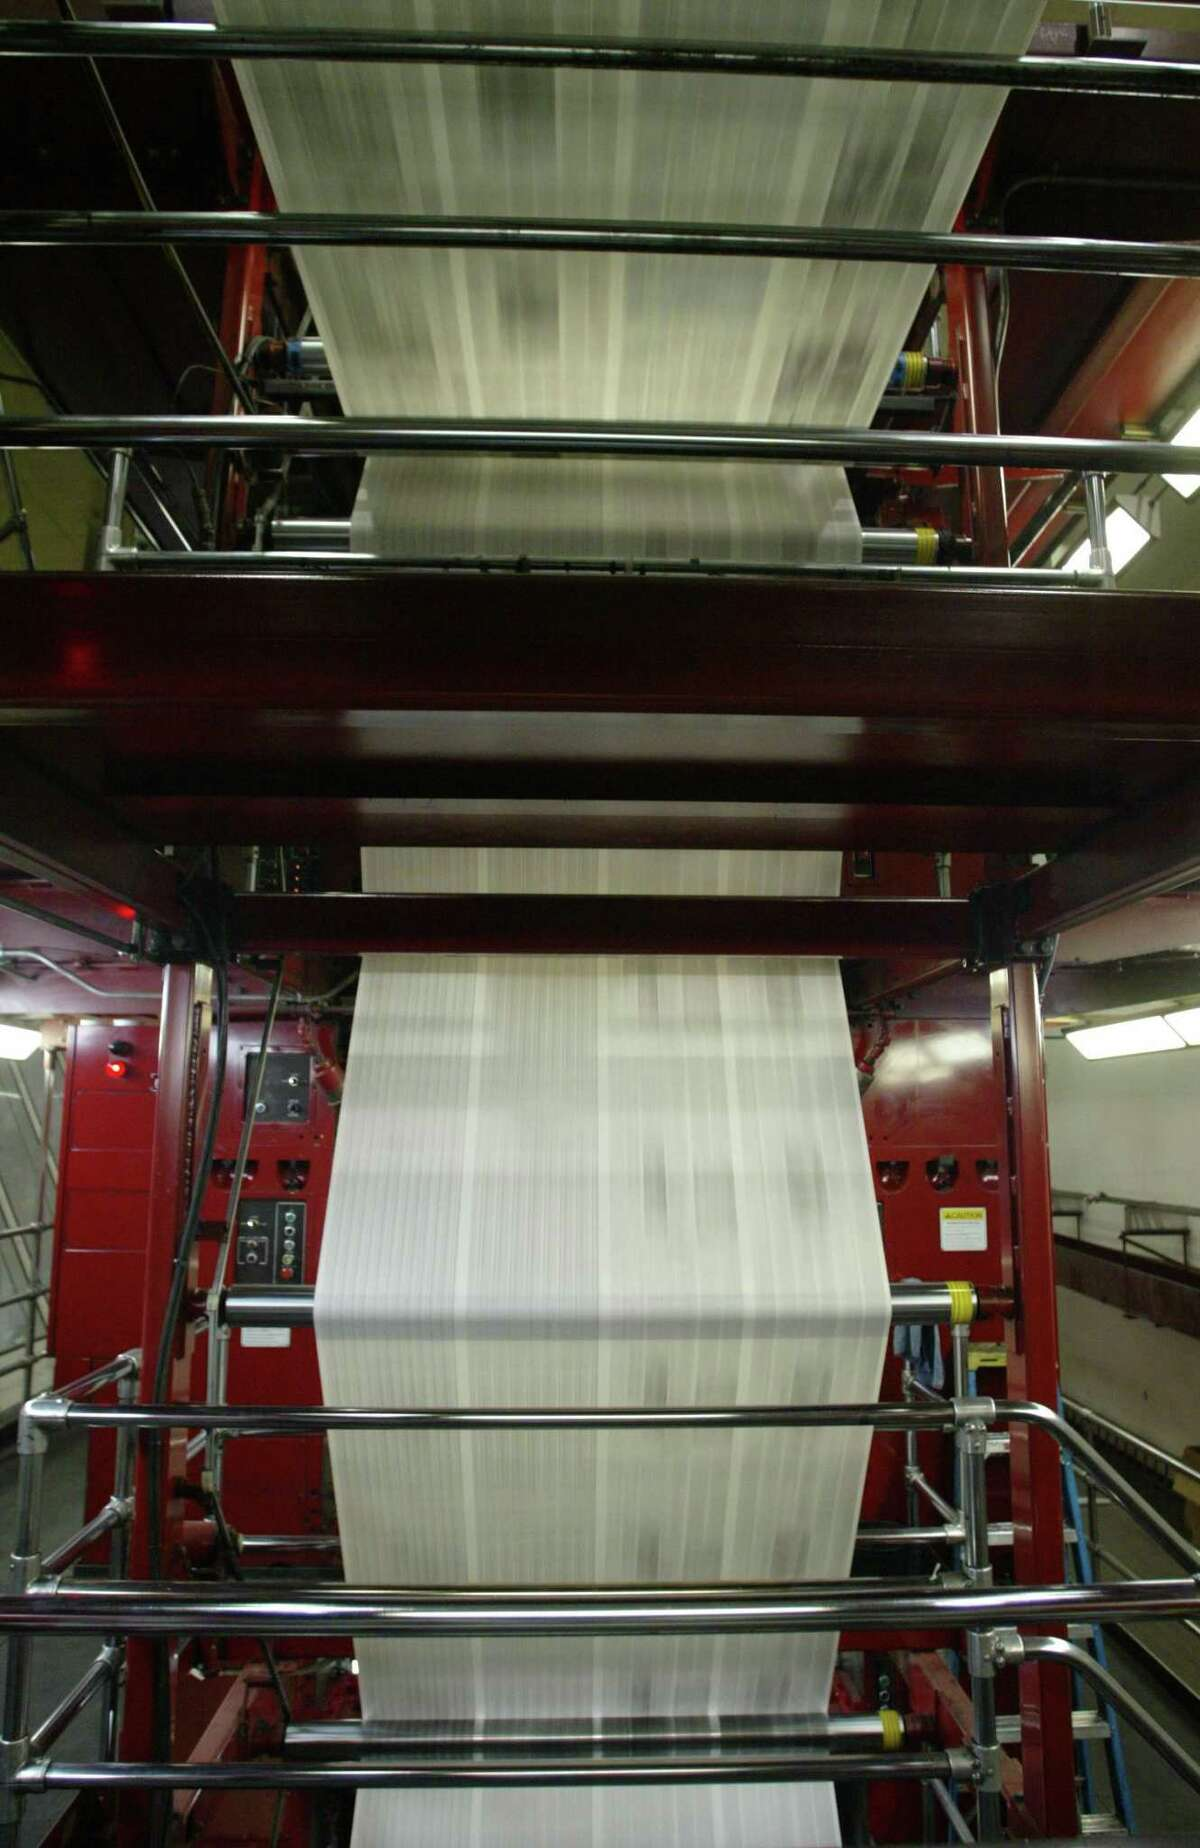 3-10-03 The Seattle Post-Intelligencer newspaper runs through a Goss press at the Times North Creek printing plant in Bothell.